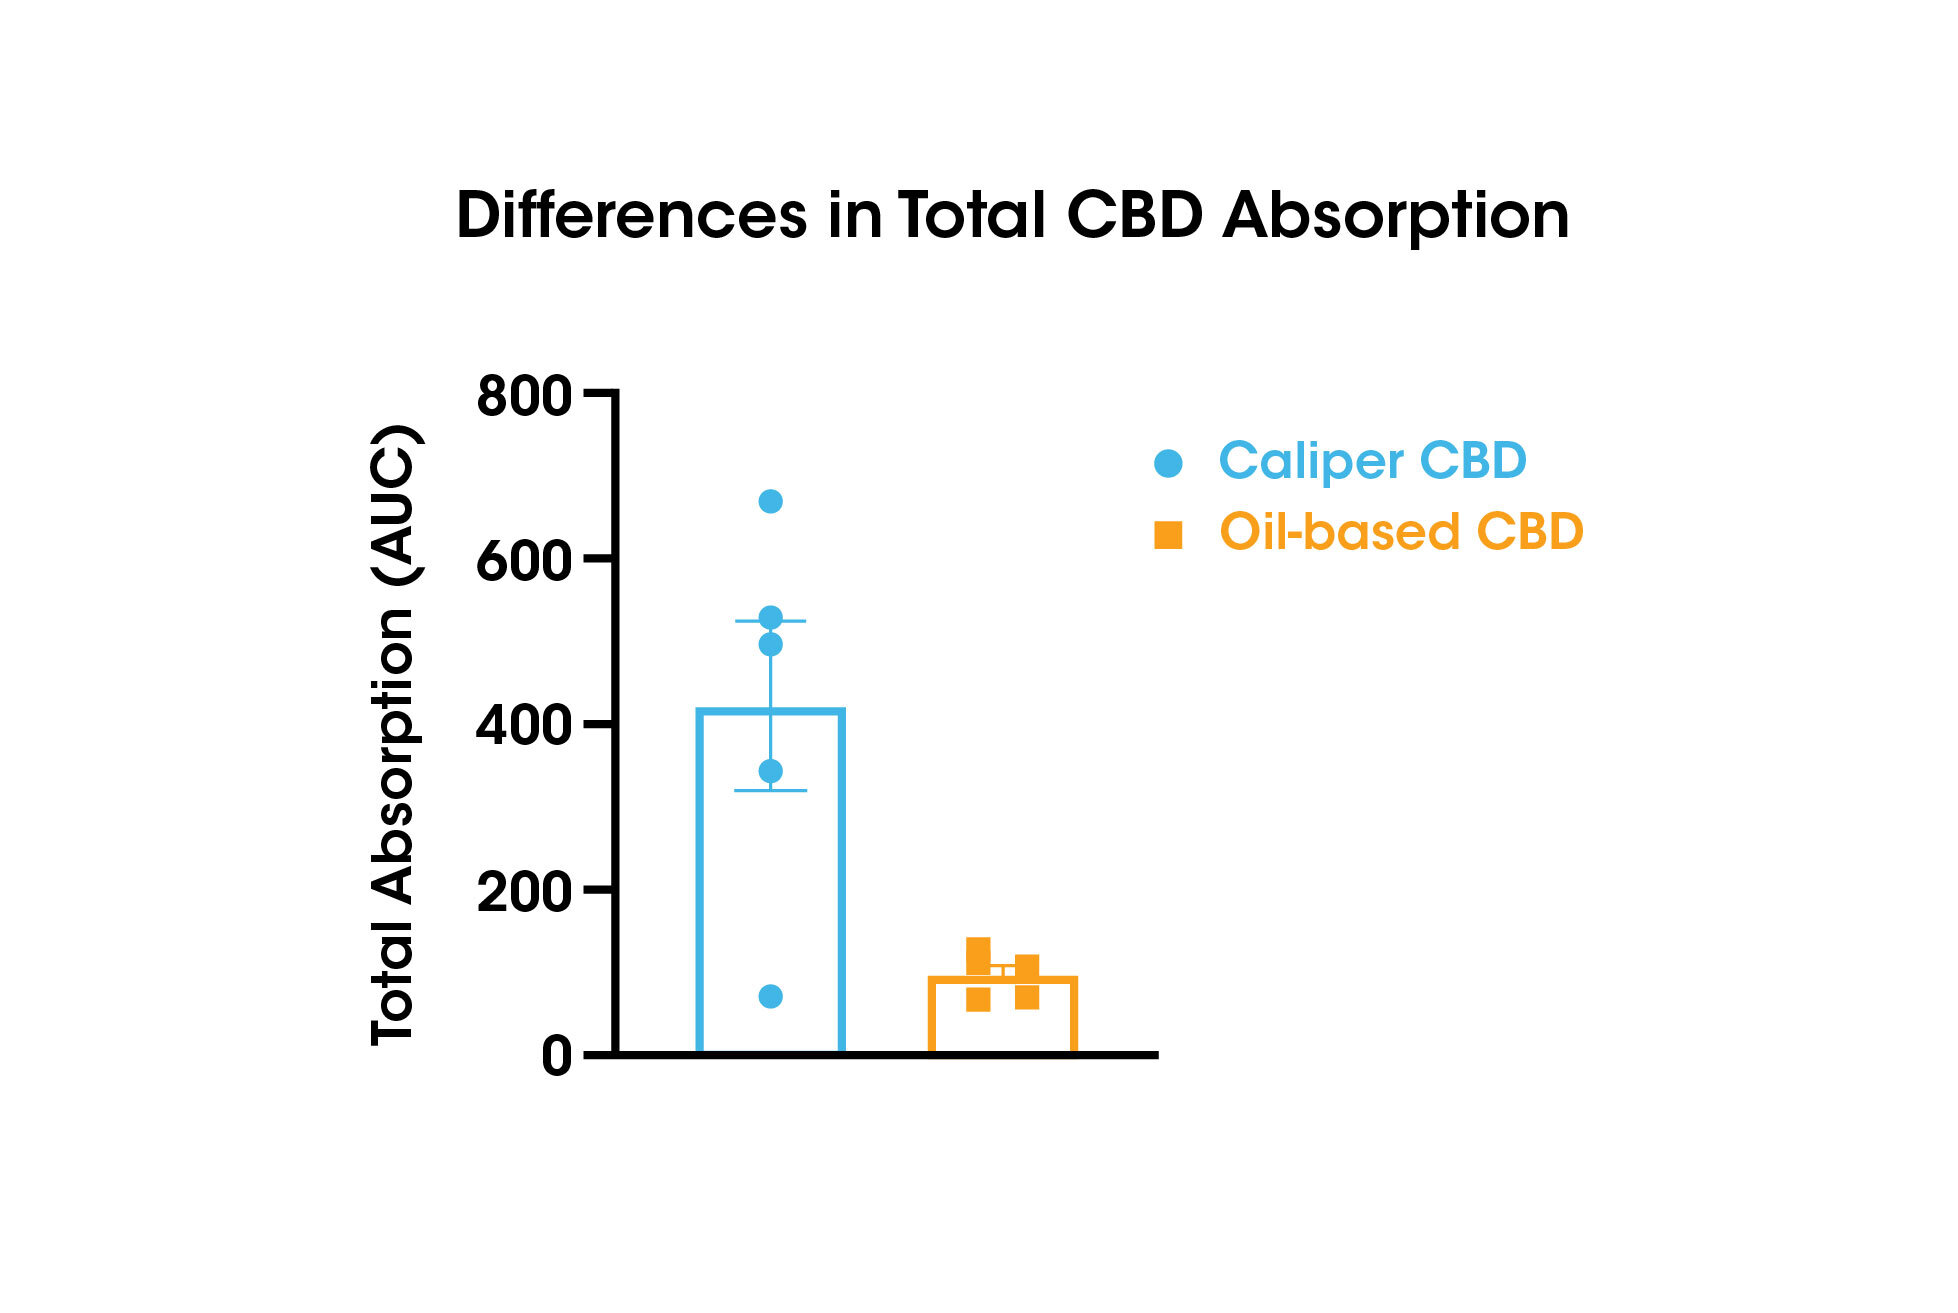 Compared with oil-based CBD, 4.5 times more Caliper CBD was absorbed during the 6-hour study period.